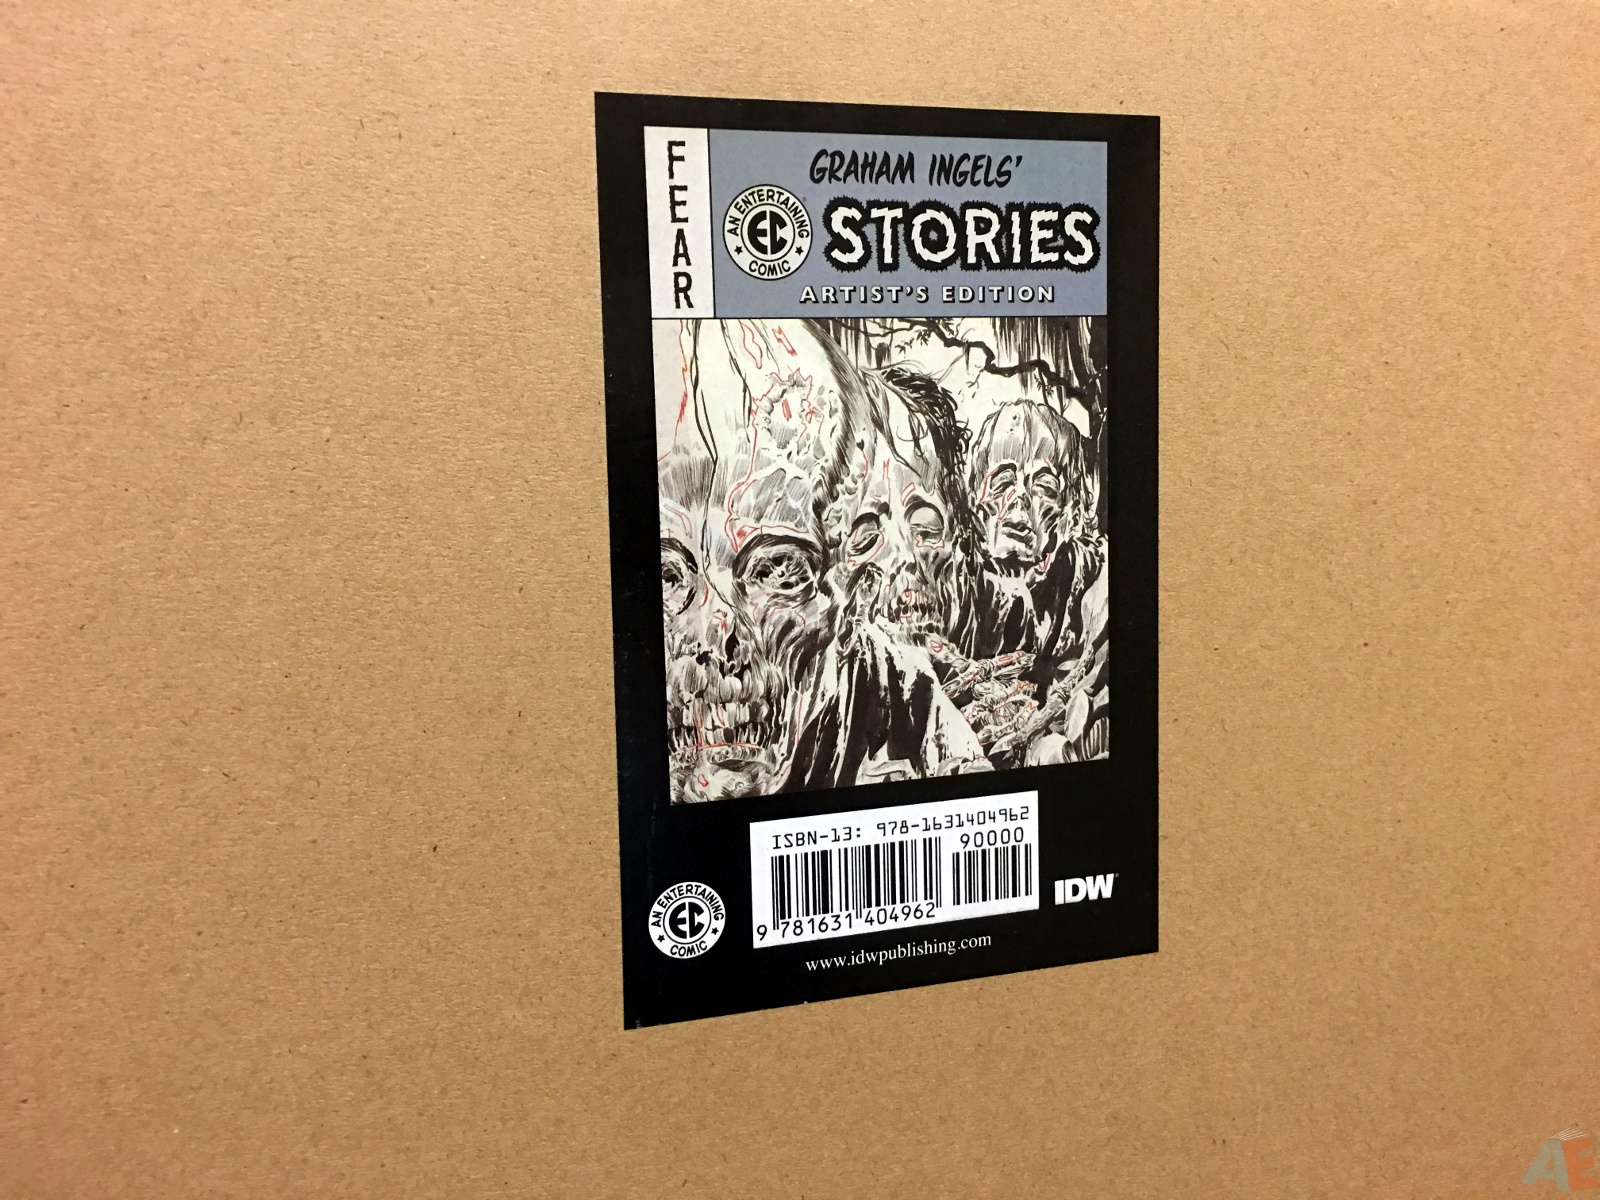 Graham Ingels' EC Stories Artist's Edition 52